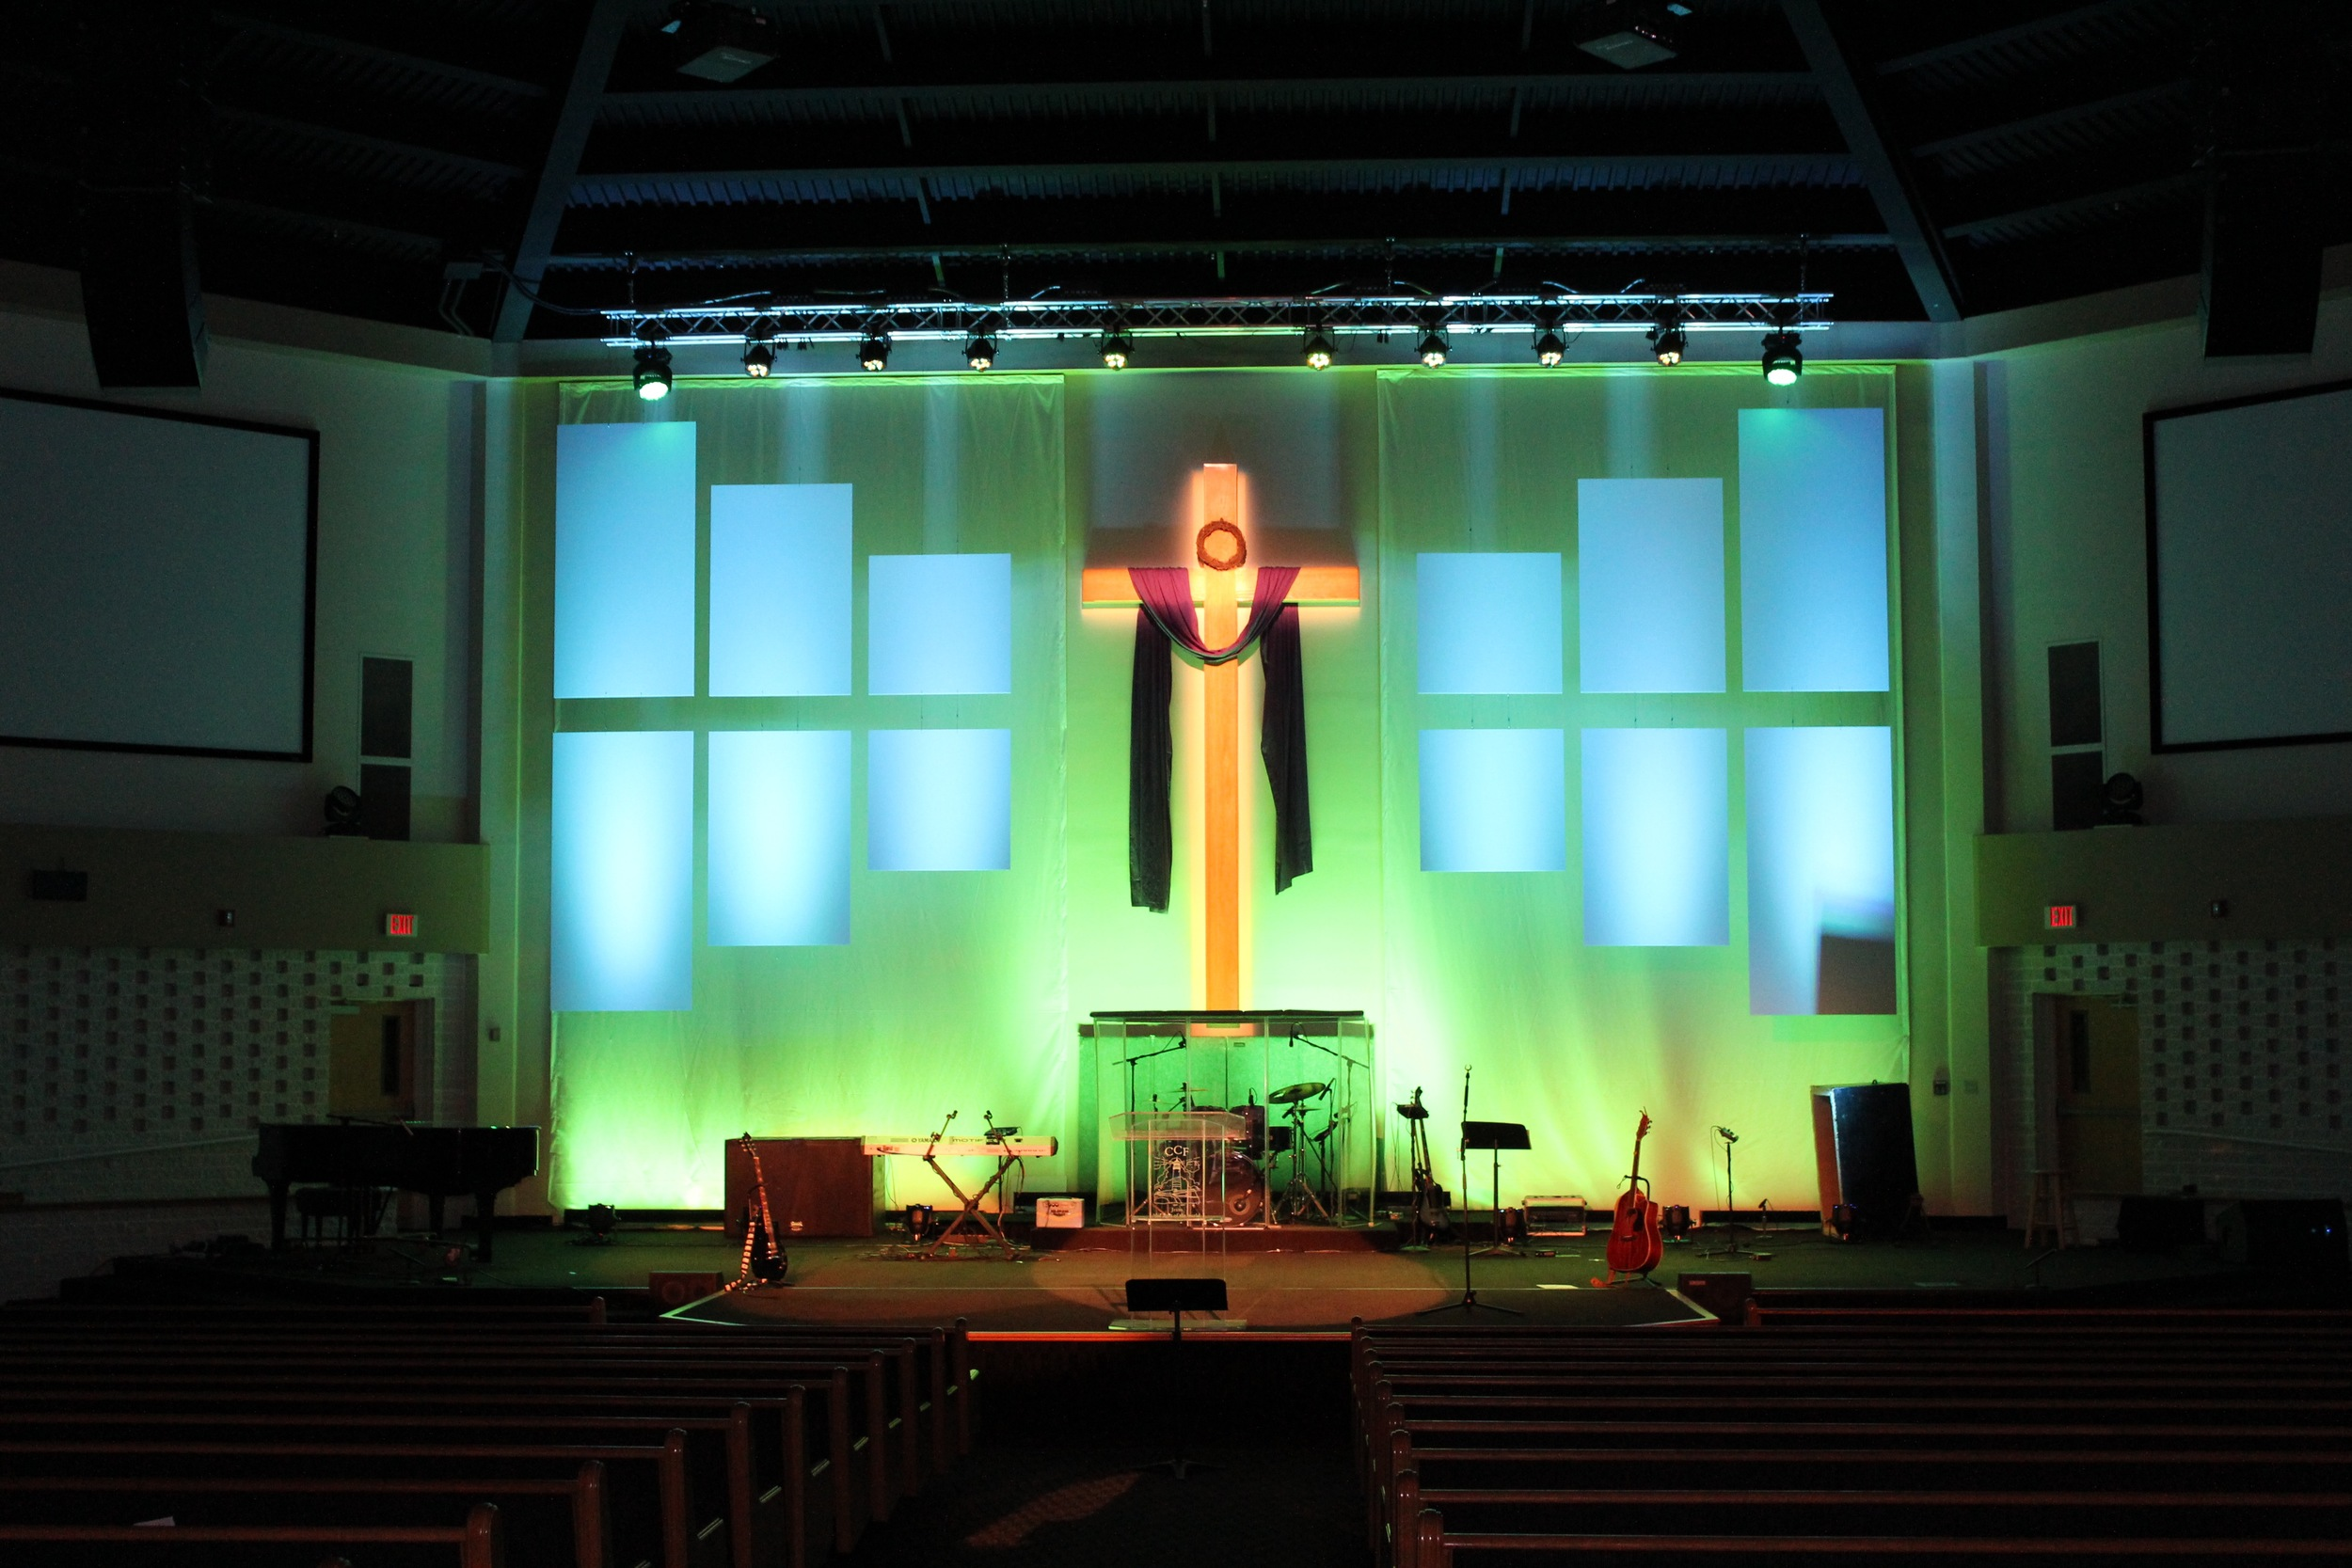 Chesapeake_Christian_Fellowship_Church_07.jpg